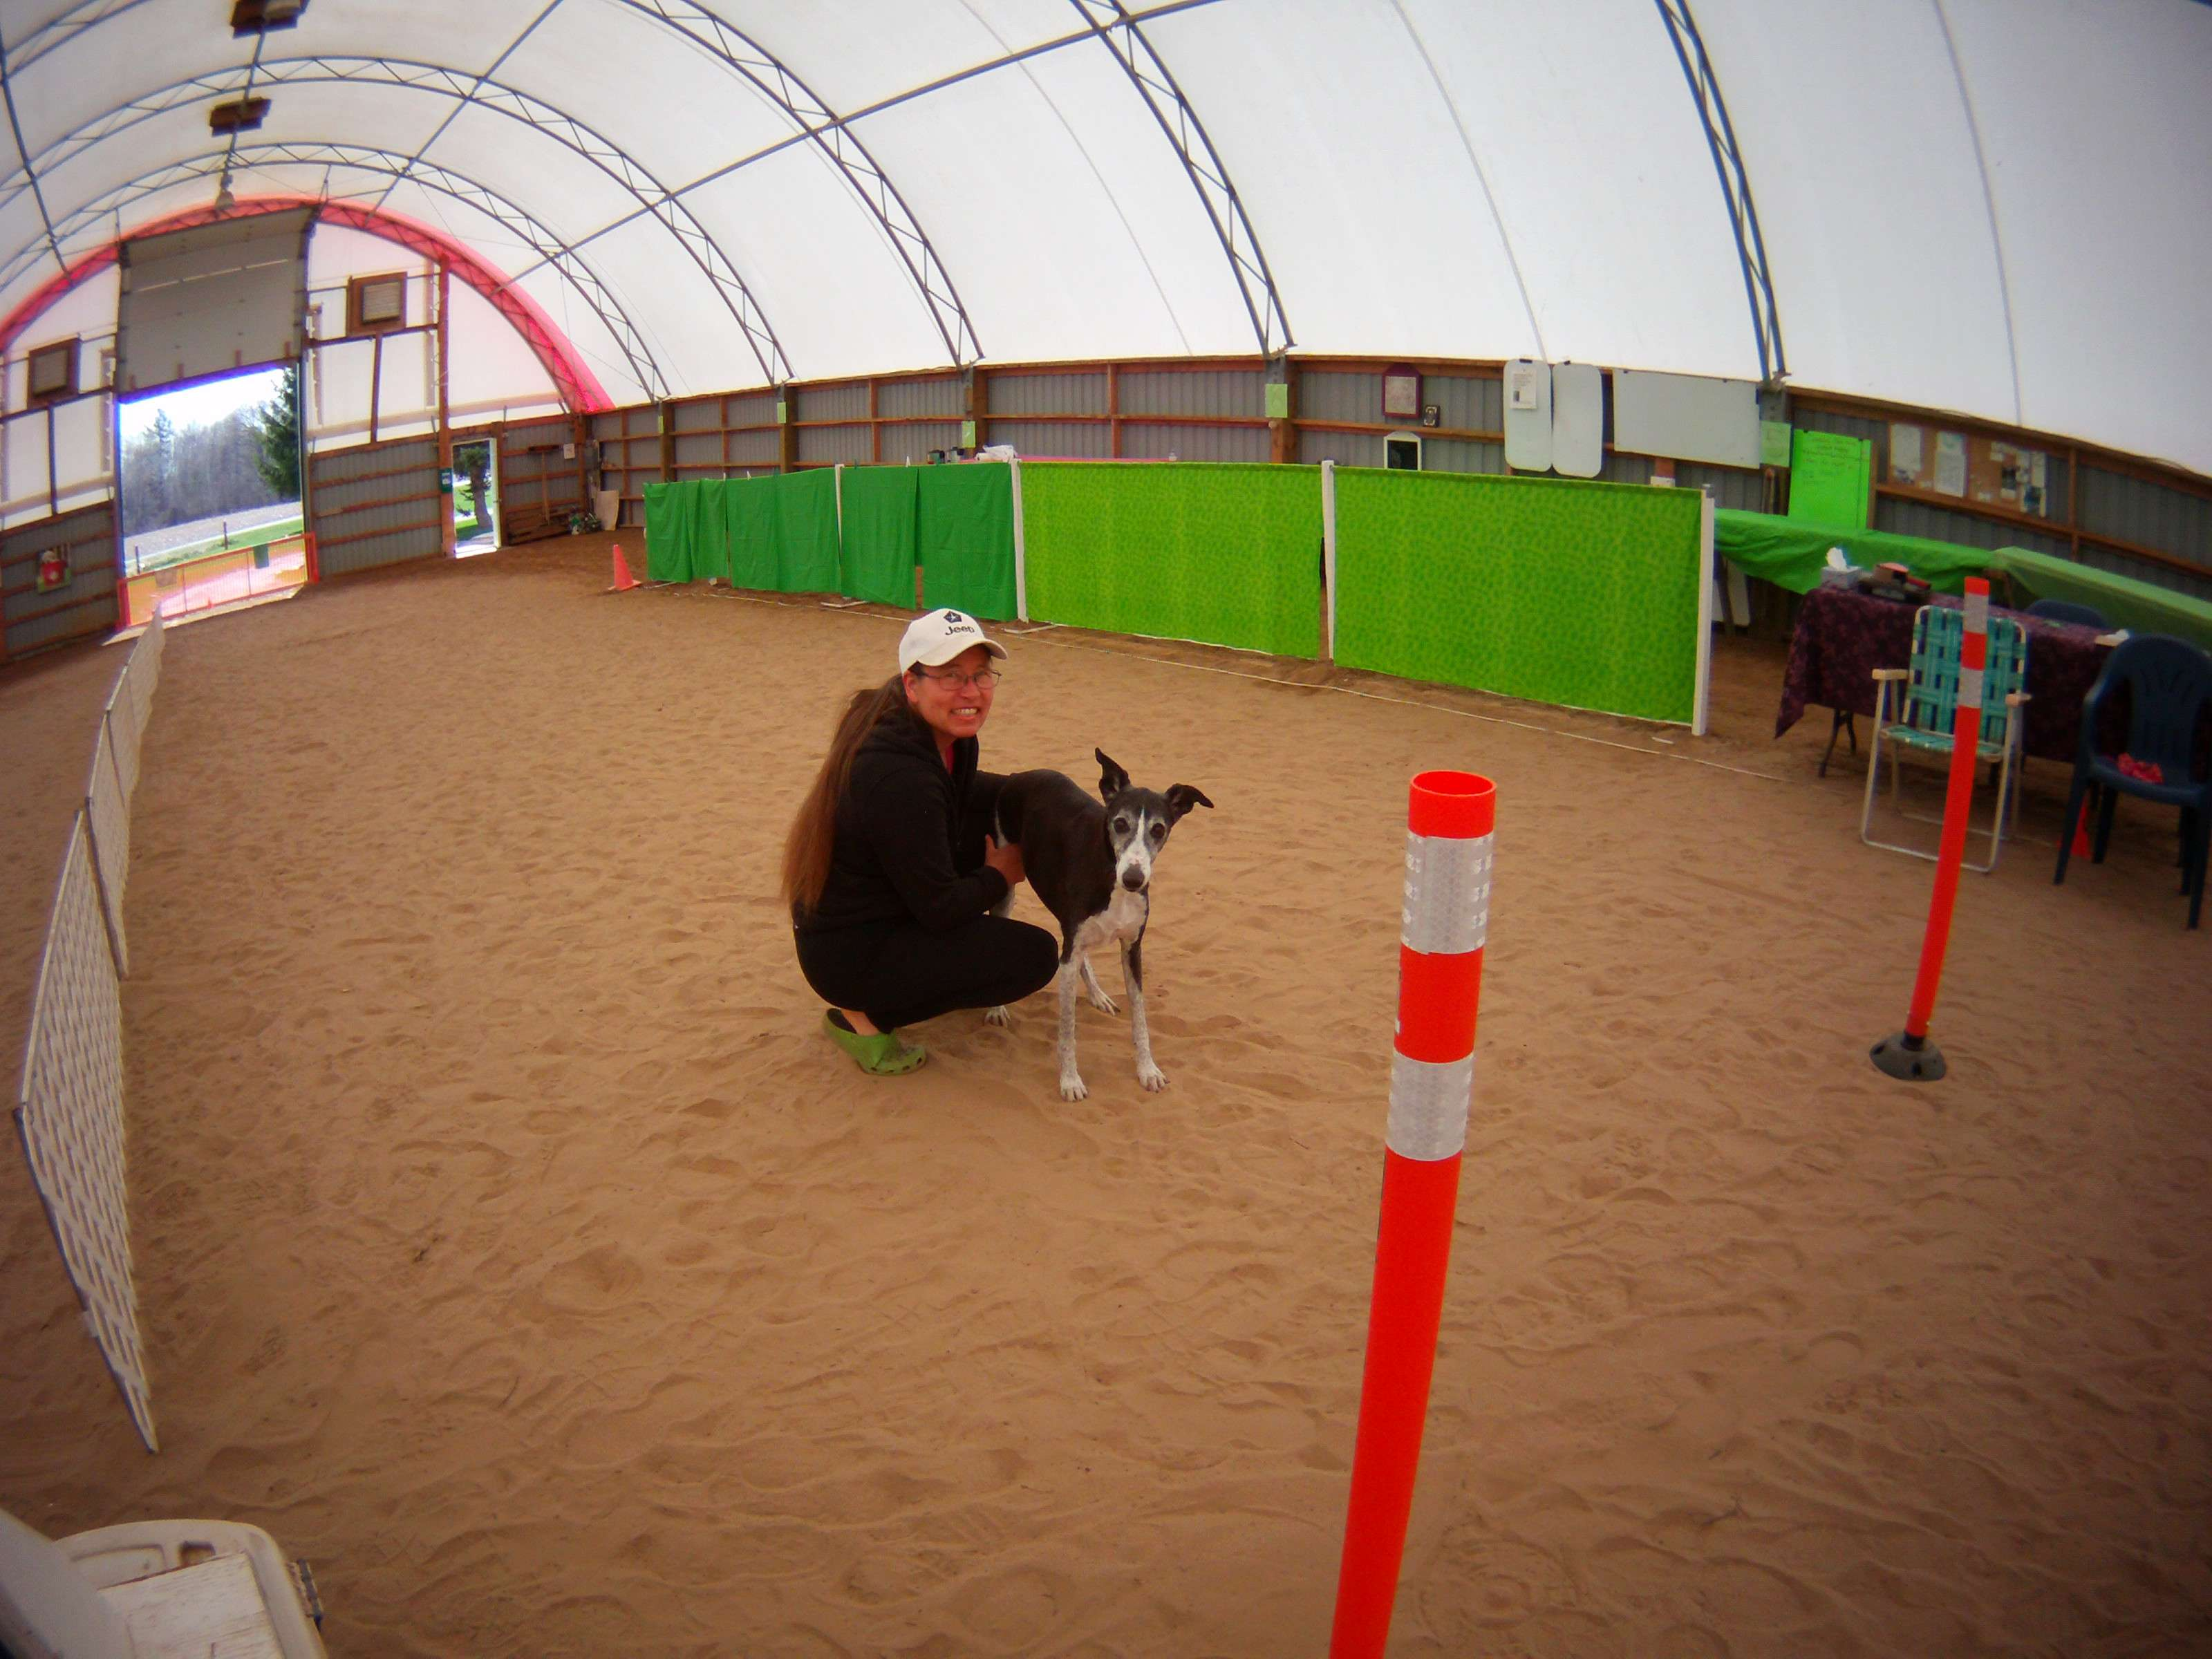 Almost 13 years old and Domino still likes to come out to the Diggity Dome. He gives his approval to the set up.